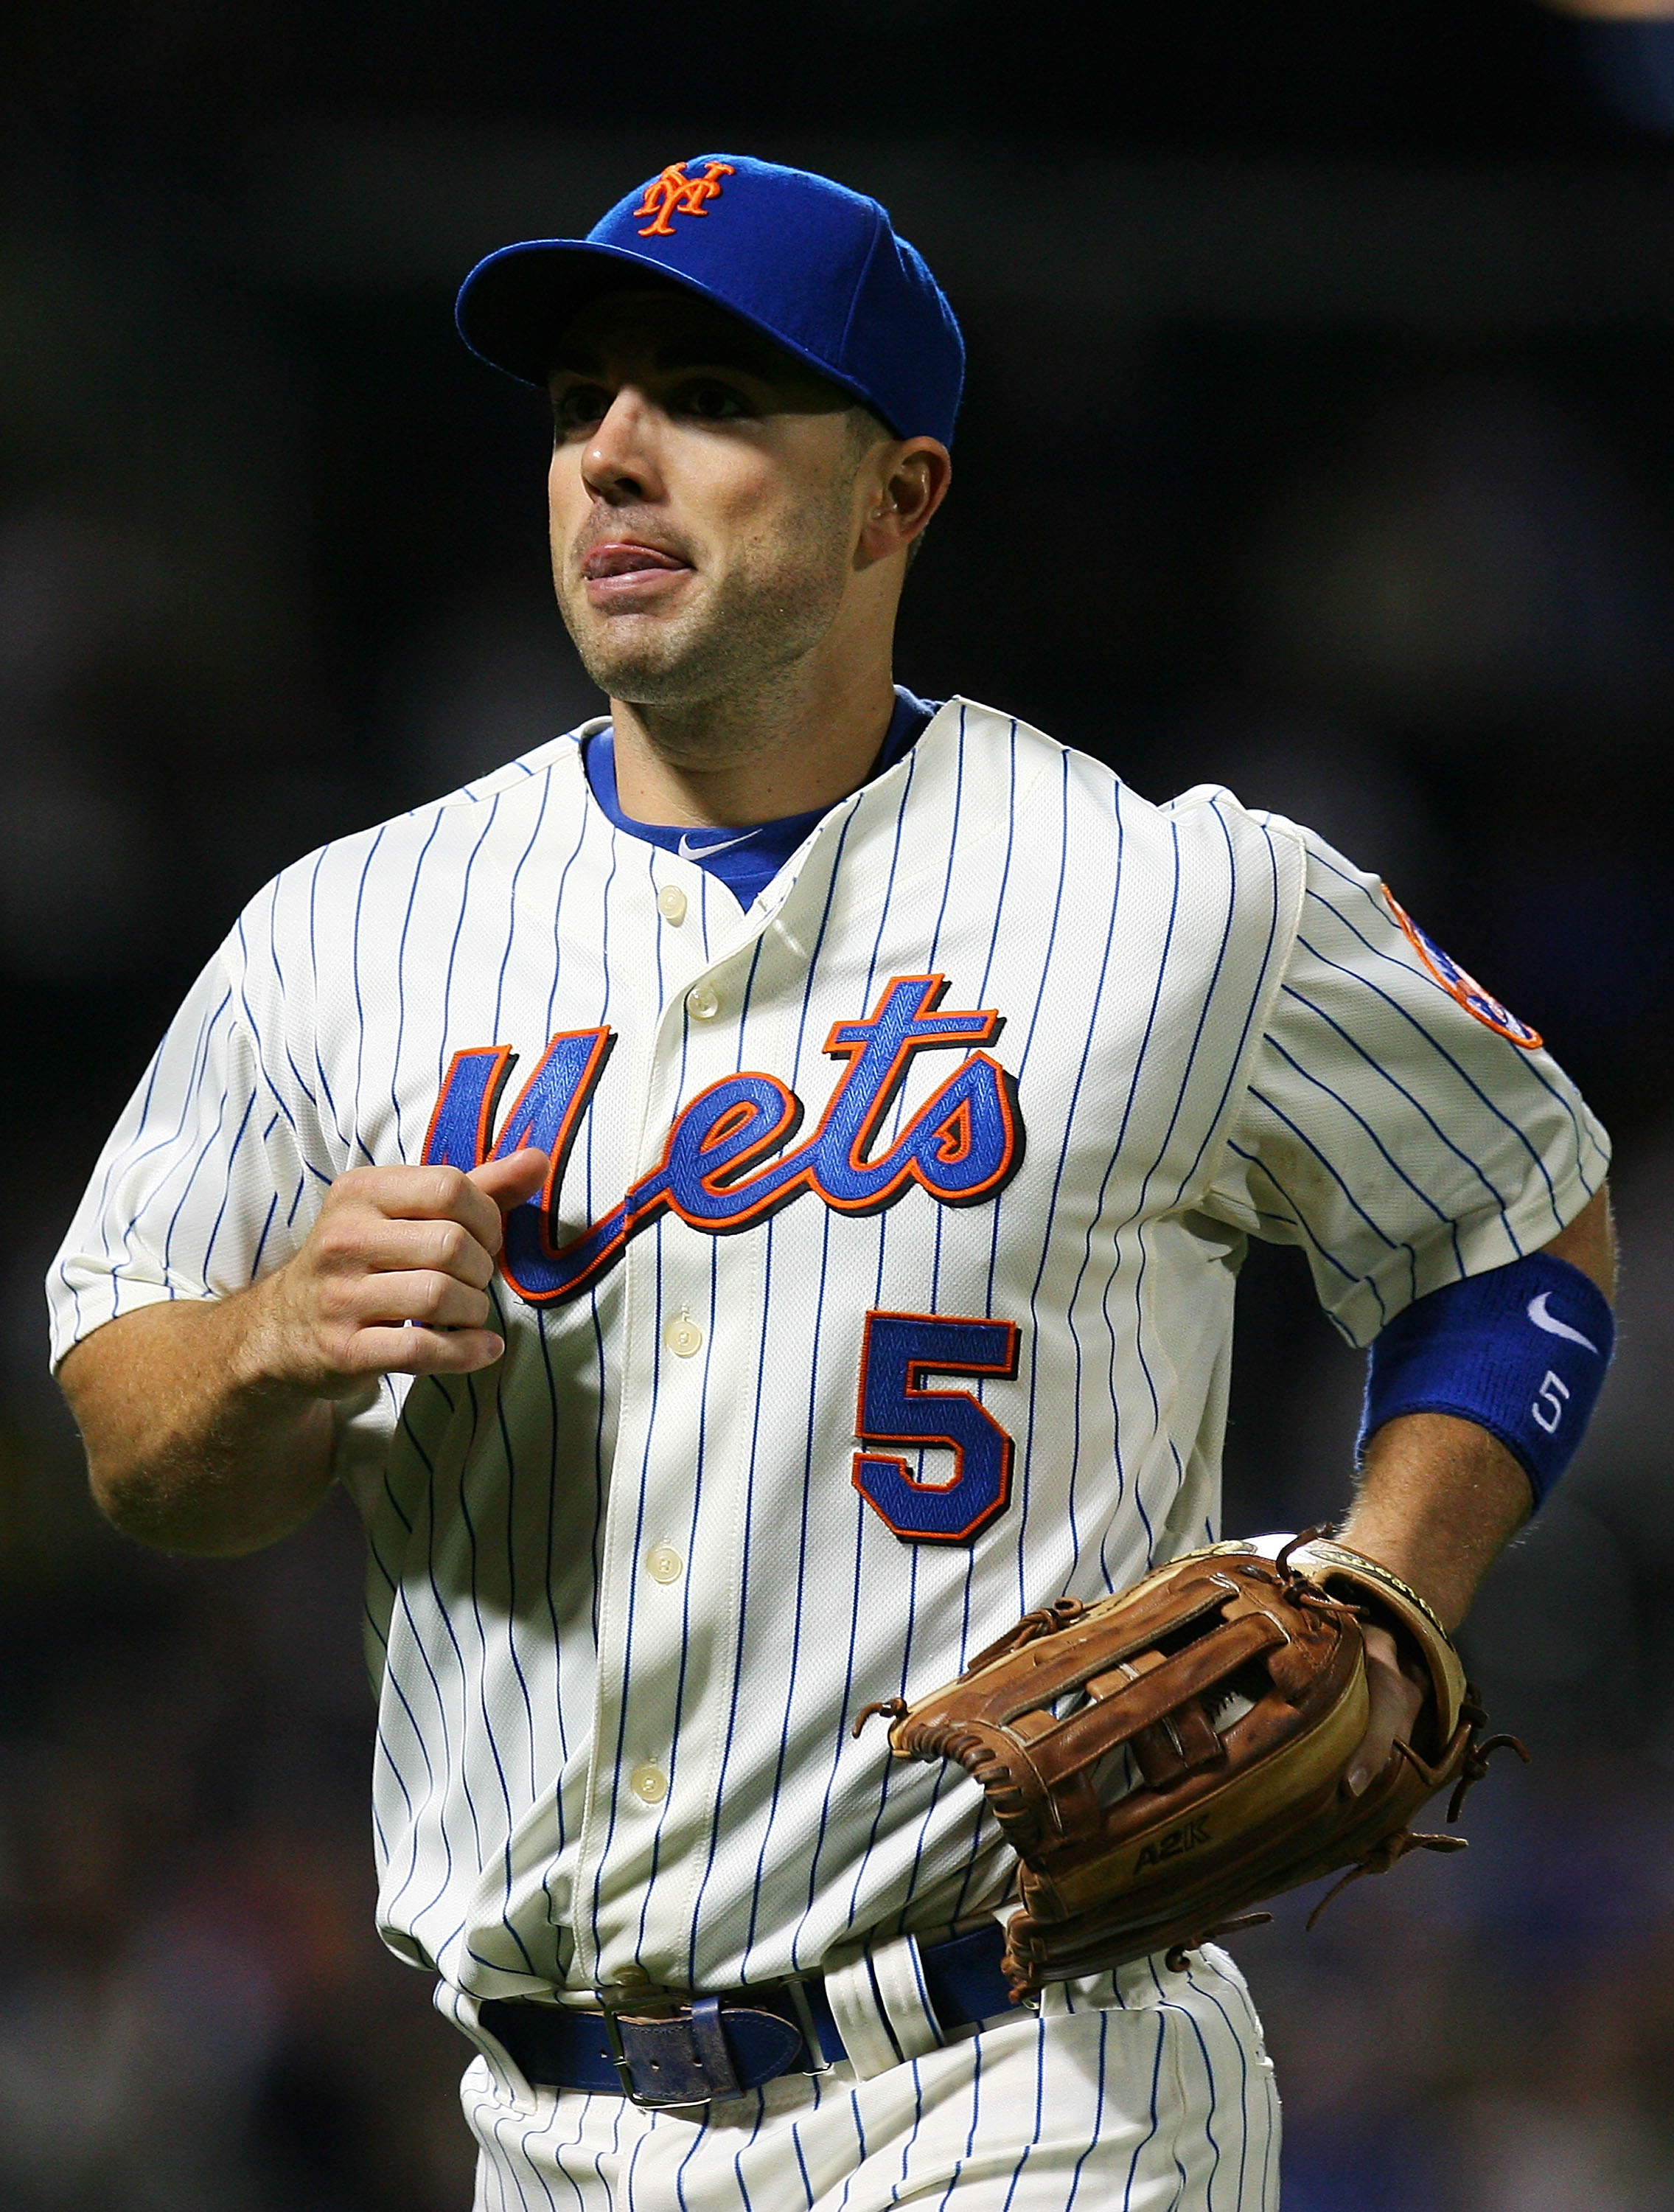 NEW YORK - SEPTEMBER 15:  David Wright #5 of the New York Mets is seen during a game against the Pittsburgh Pirates on September 15, 2010 at Citi Field in the Flushing neighborhood of the Queens borough of New York City.  (Photo by Andrew Burton/Getty Ima